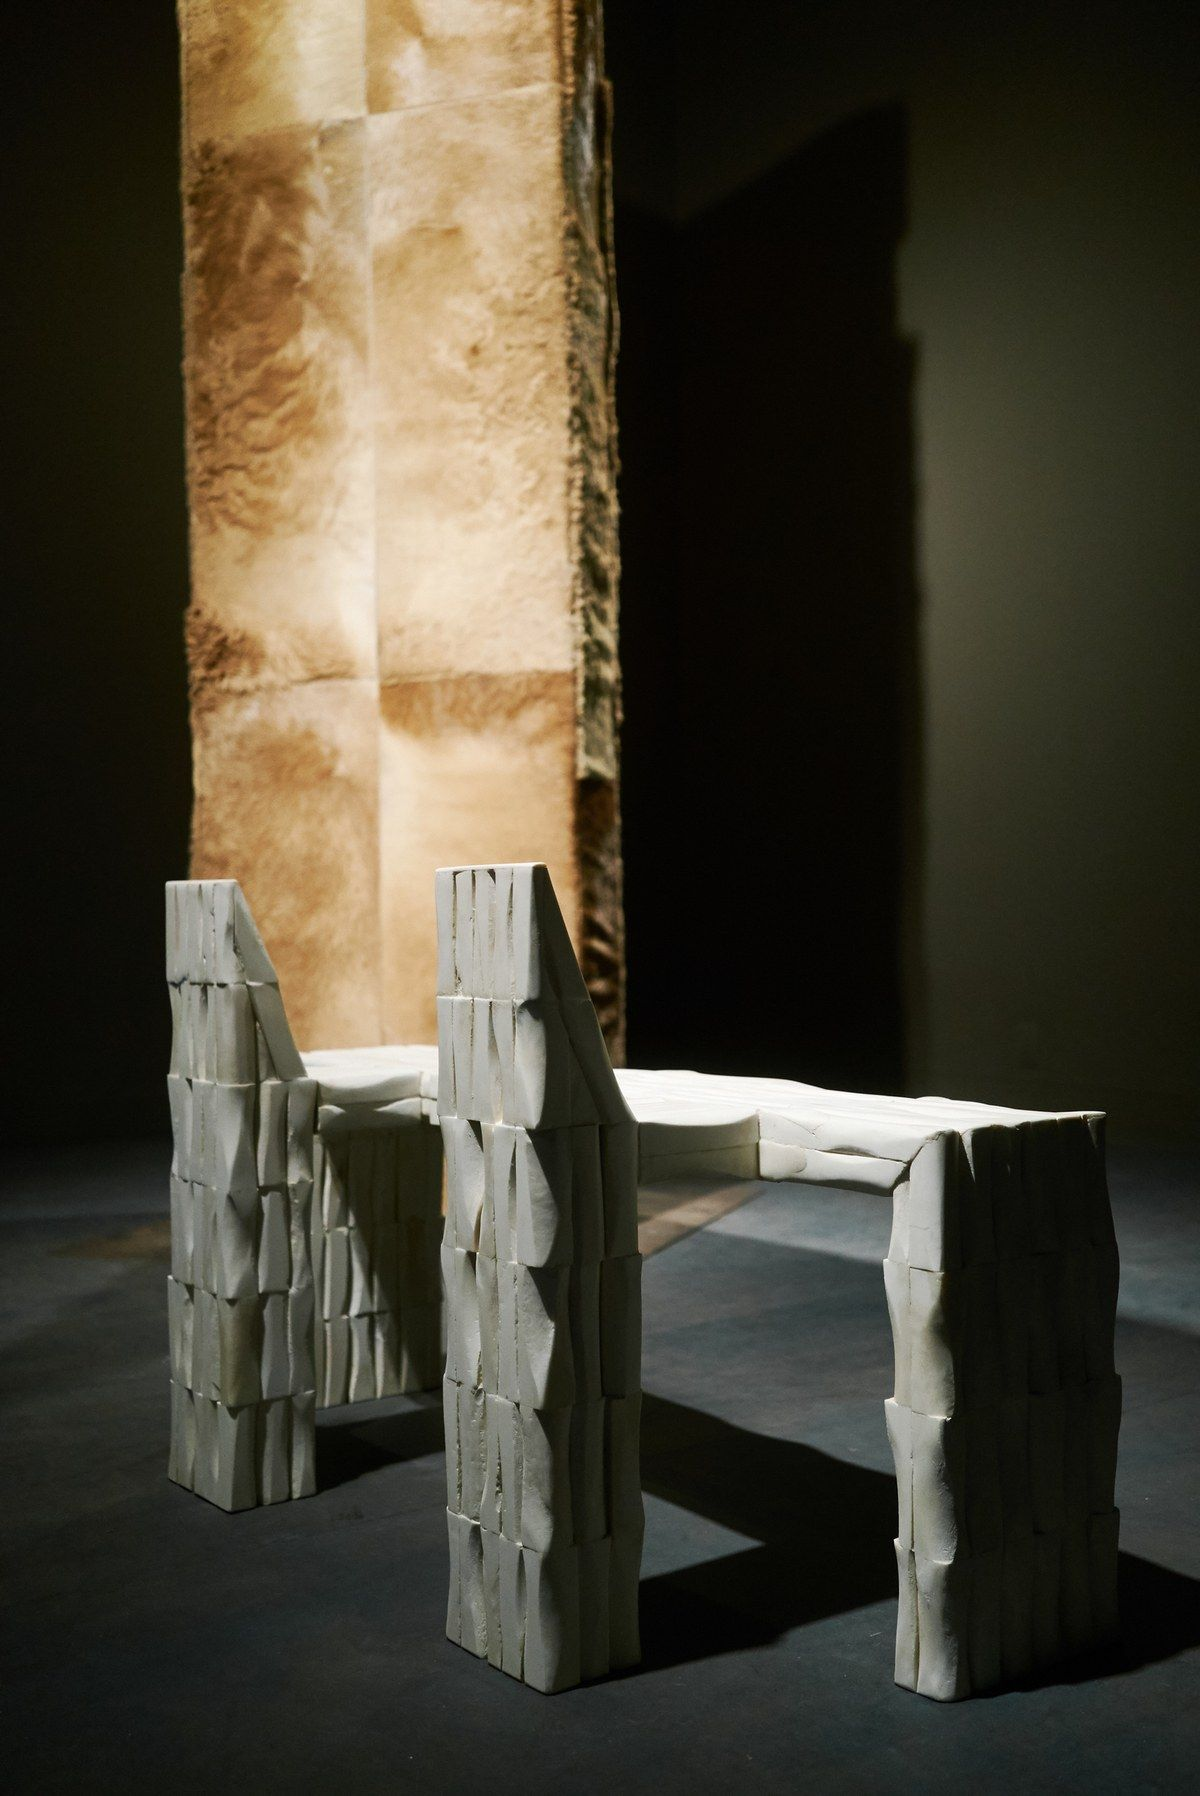 The Most Avant Garde Looks At The Opening Of Rick Owens Furniture Exhibit Gq Furniture Rick Owens Contemporary Furniture